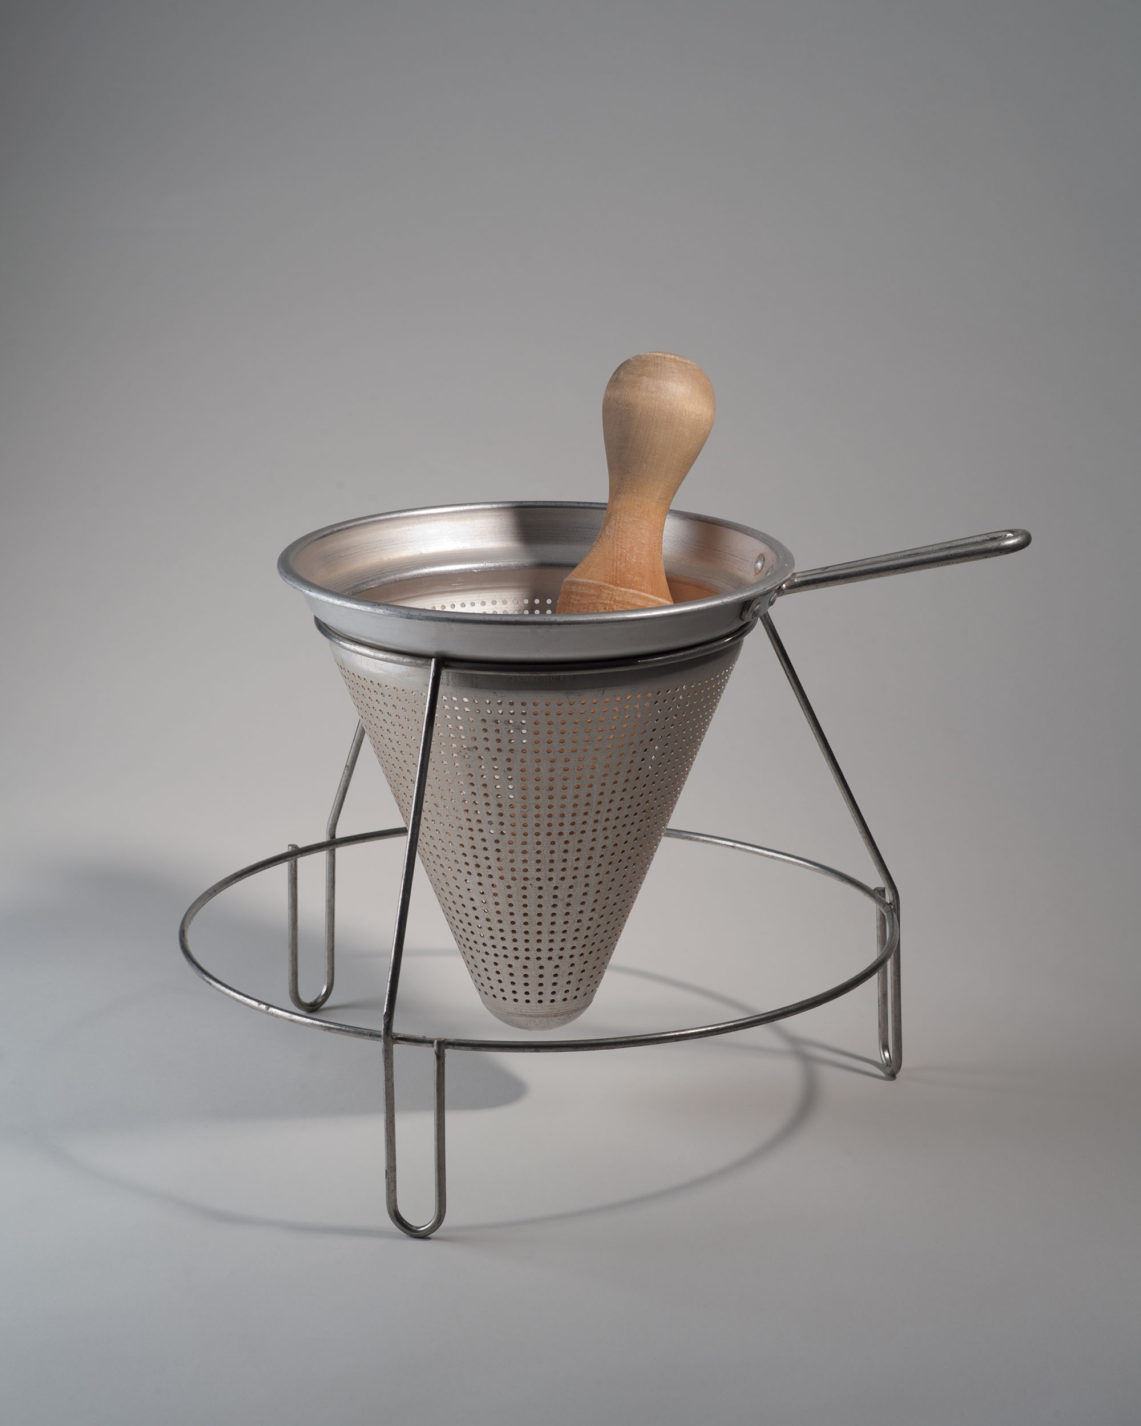 Conical sieve set into a circular wire frame with three legs and a handle. A wooden pestle sits inside the sieve.